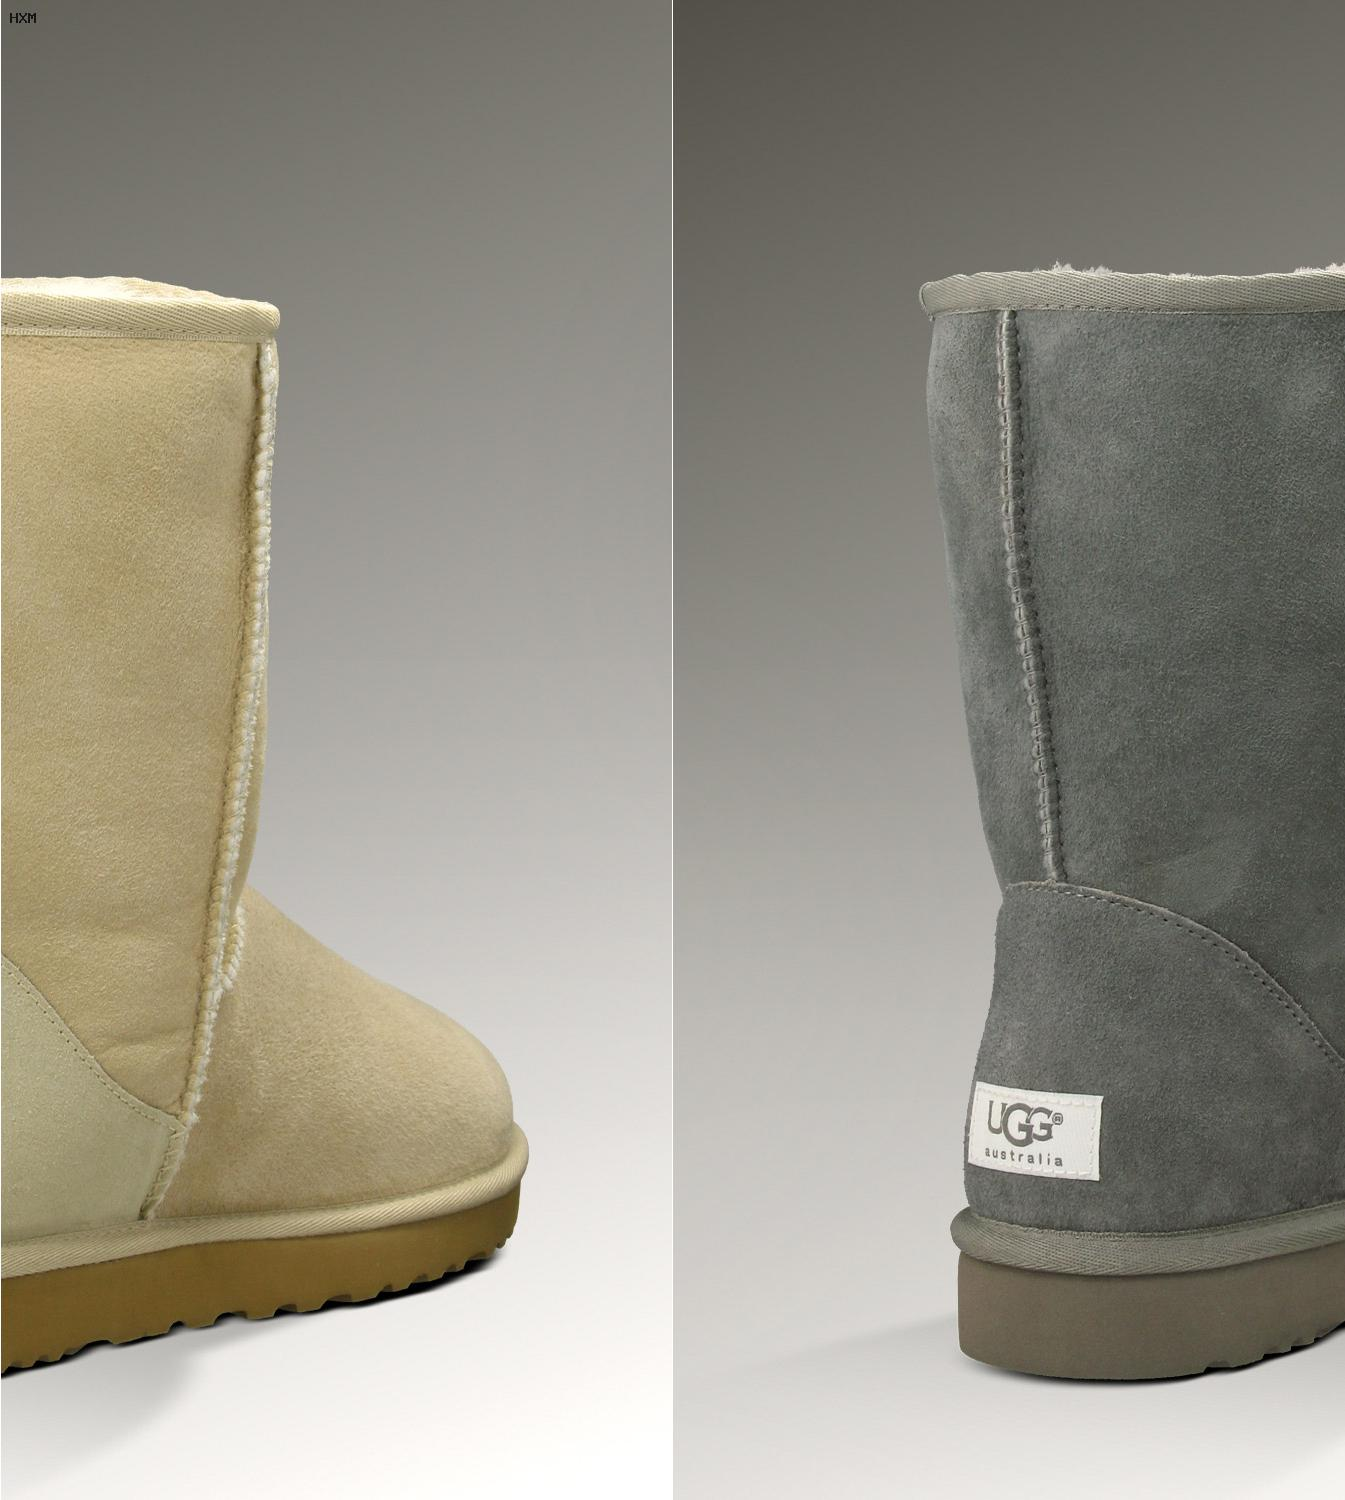 bottes ugg taille 35